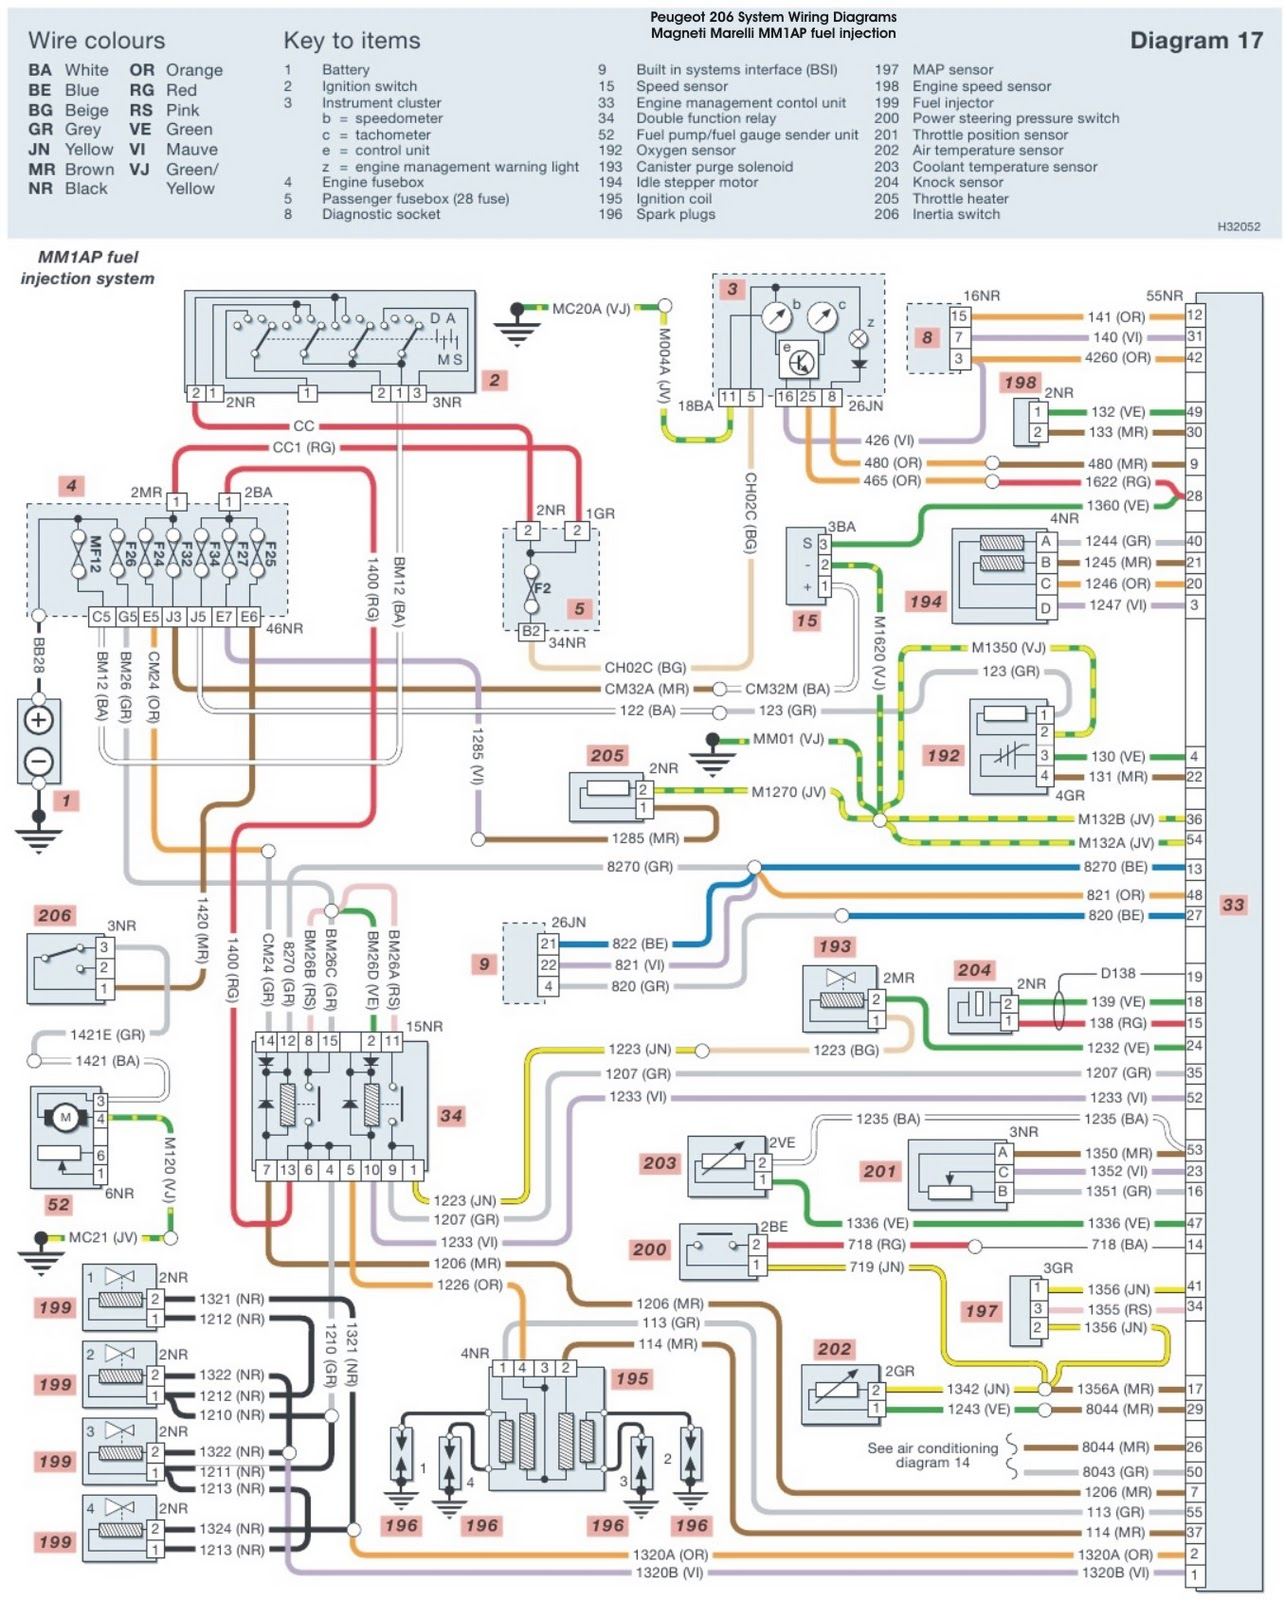 Enjoyable Peugeot Engine Wiring Diagram Diagram Data Schema Wiring Digital Resources Funapmognl